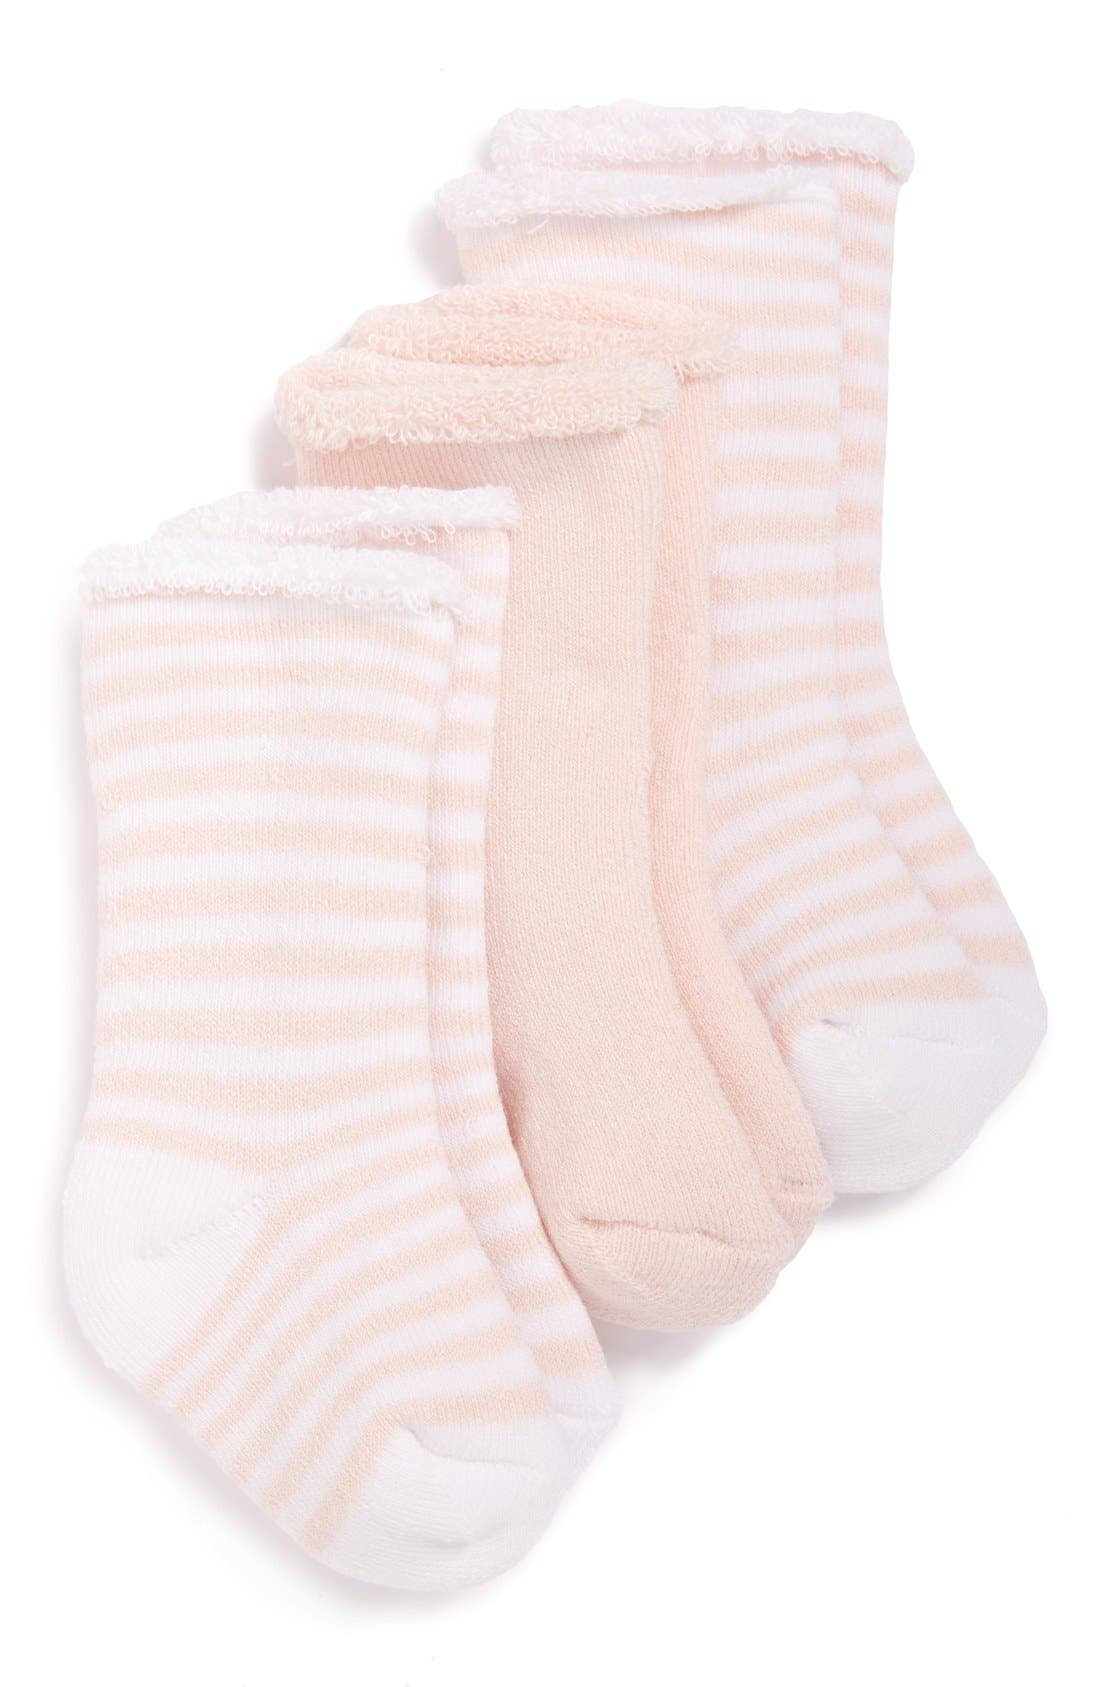 3-Pack Crew Socks,                             Main thumbnail 1, color,                             Pink Baby Heather Pack